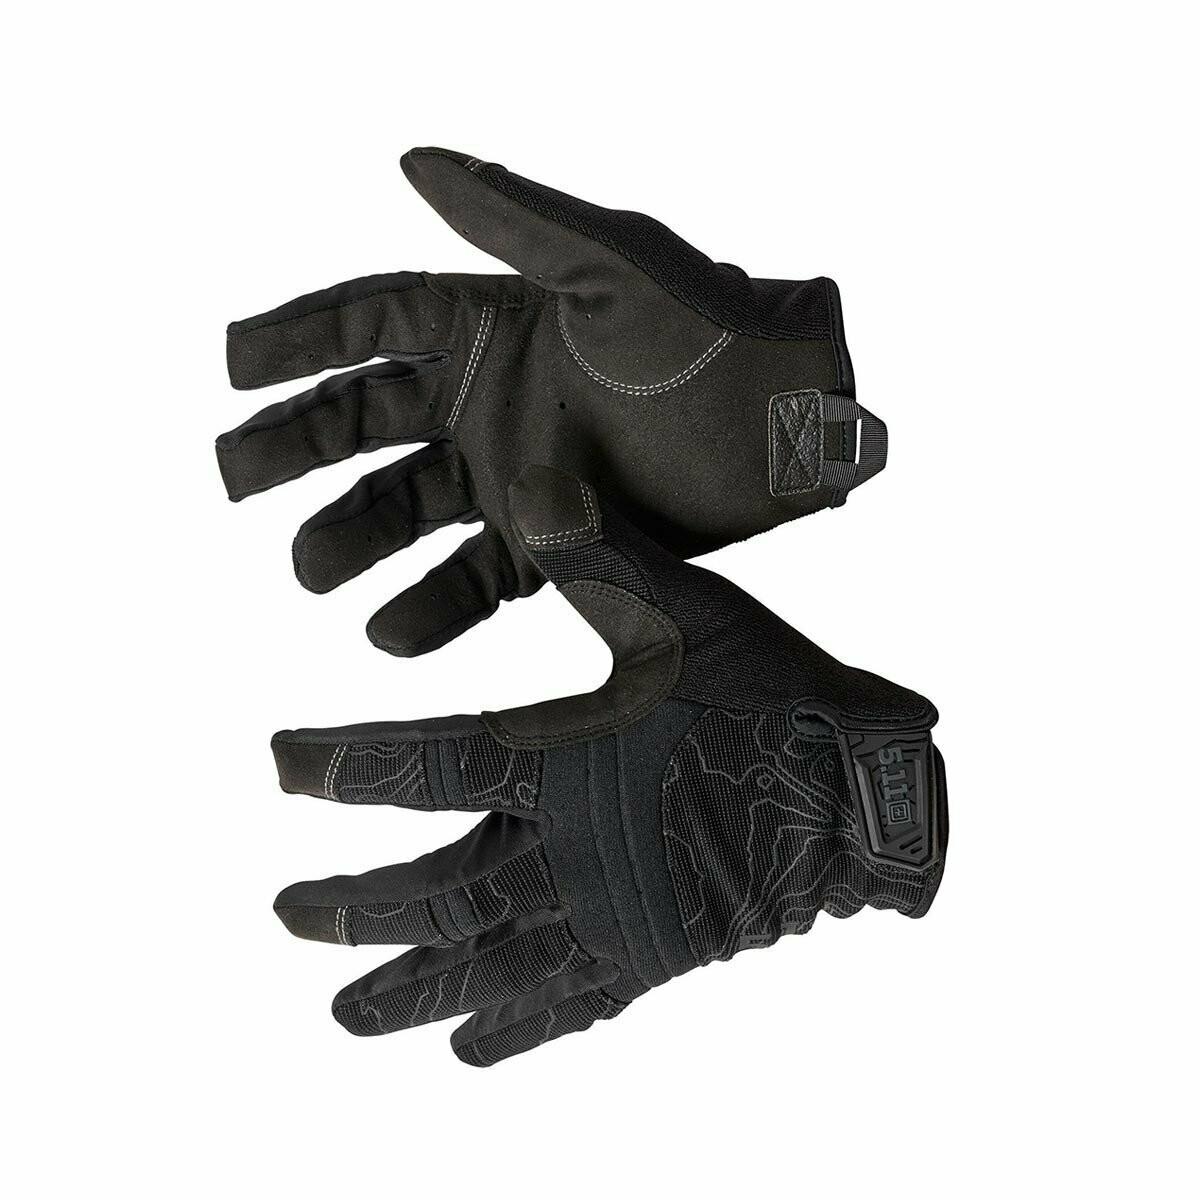 5.11 Tactical - Competition Shooting Gloves